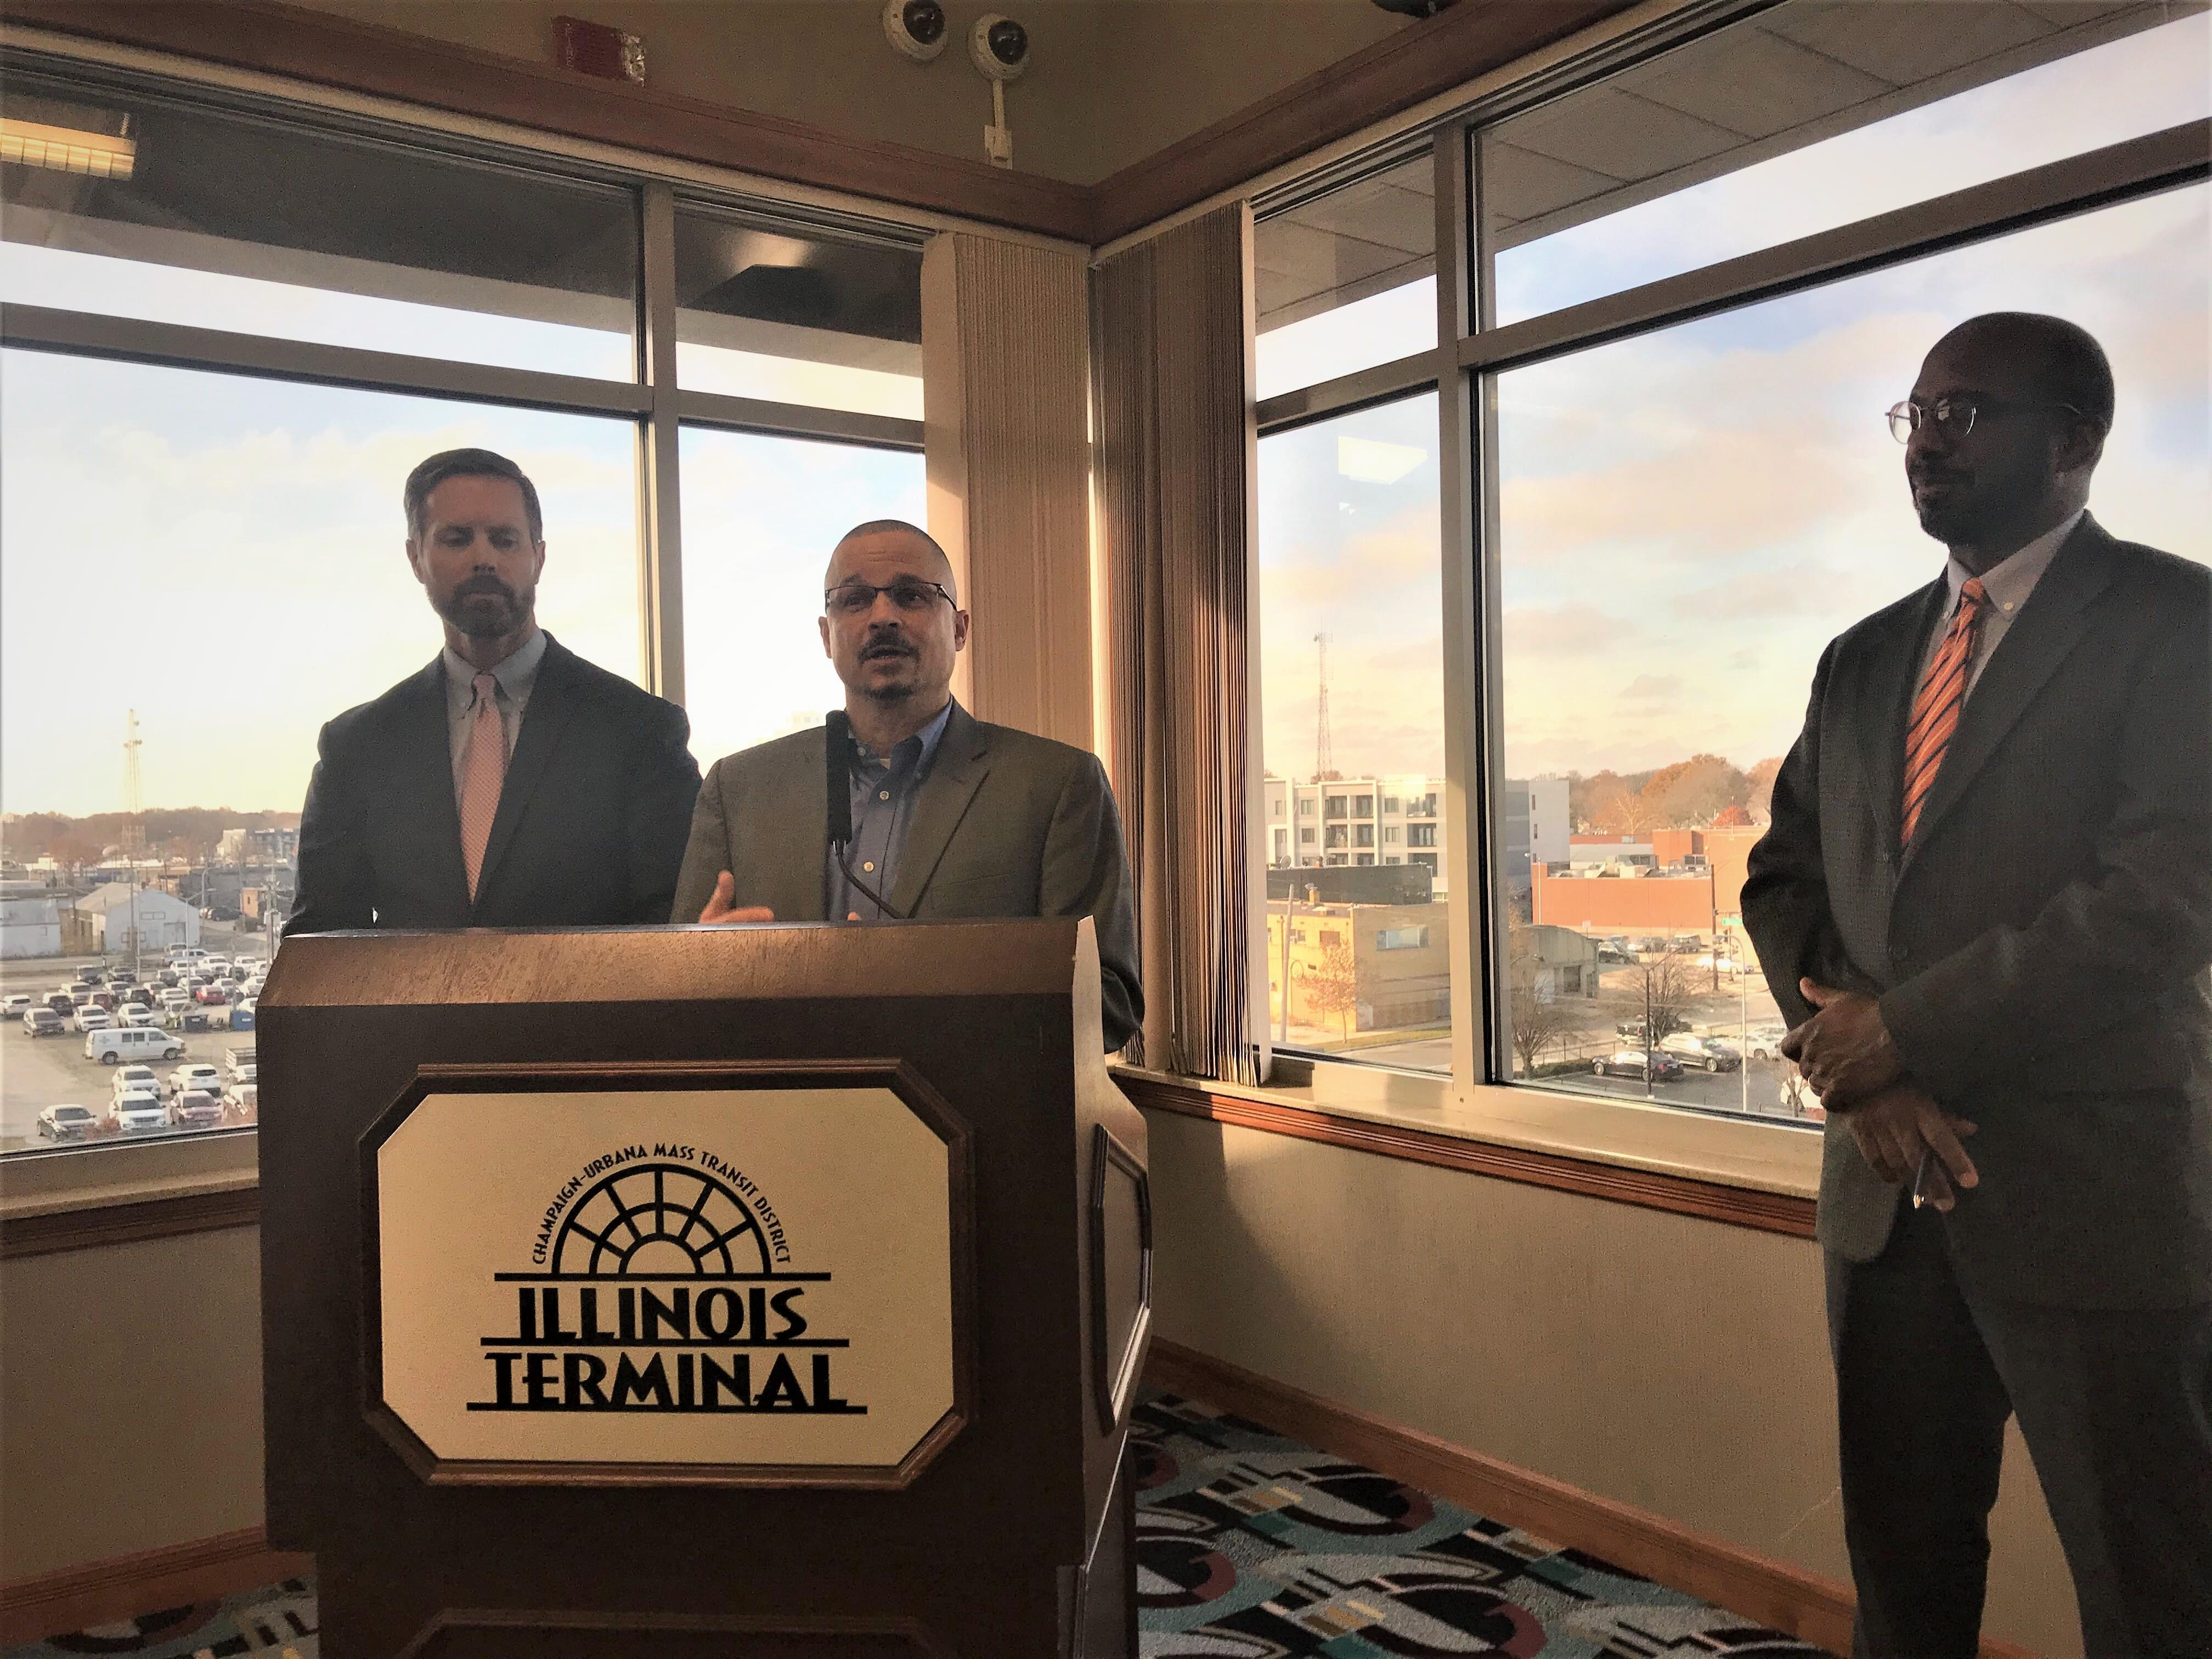 Karl Gnadt with the Champaign-Urbana Mass Transit District discusses a grant award at the Illinois Terminal on Friday.